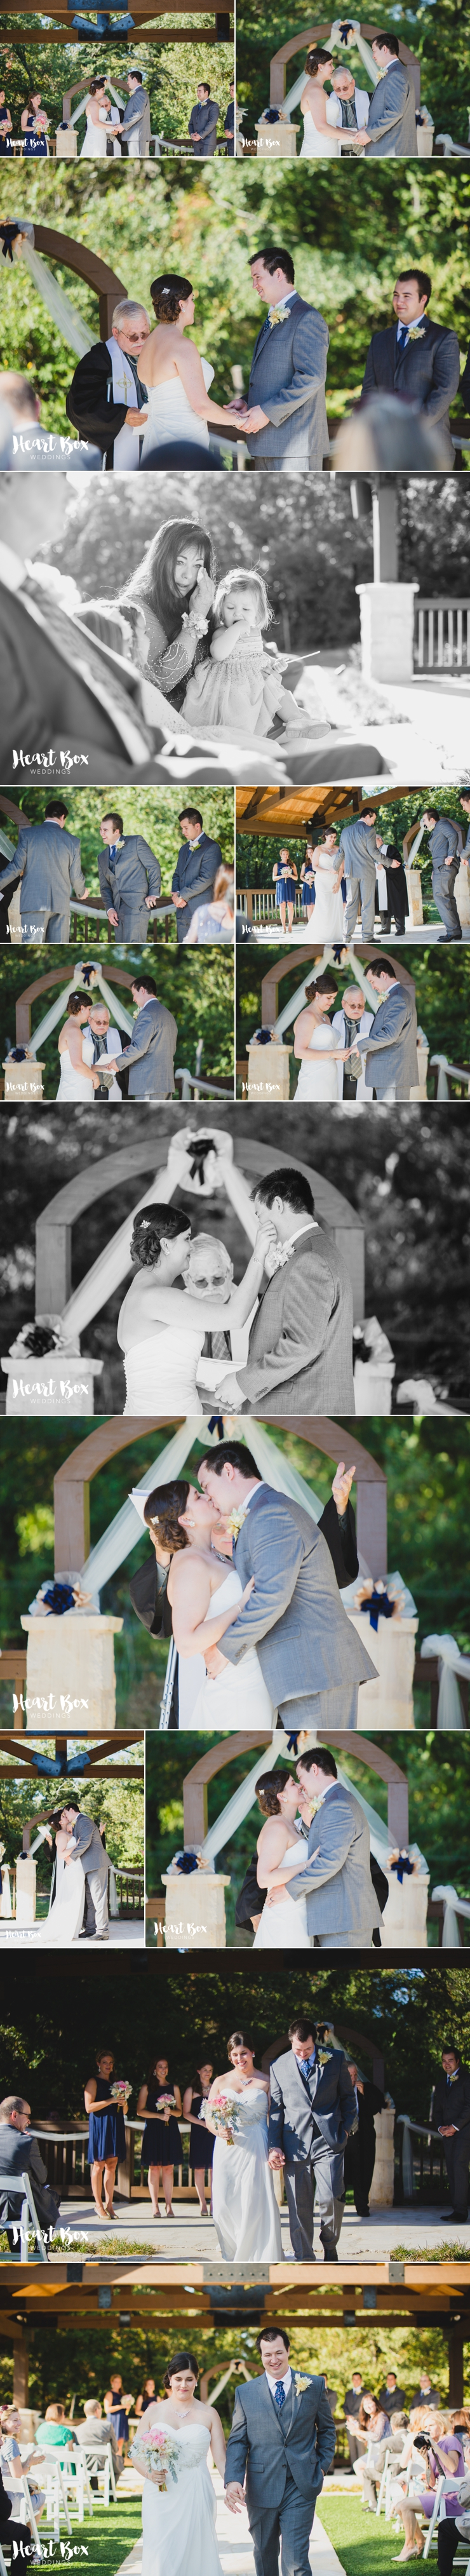 Waggoner Wedding Collages 8.jpg